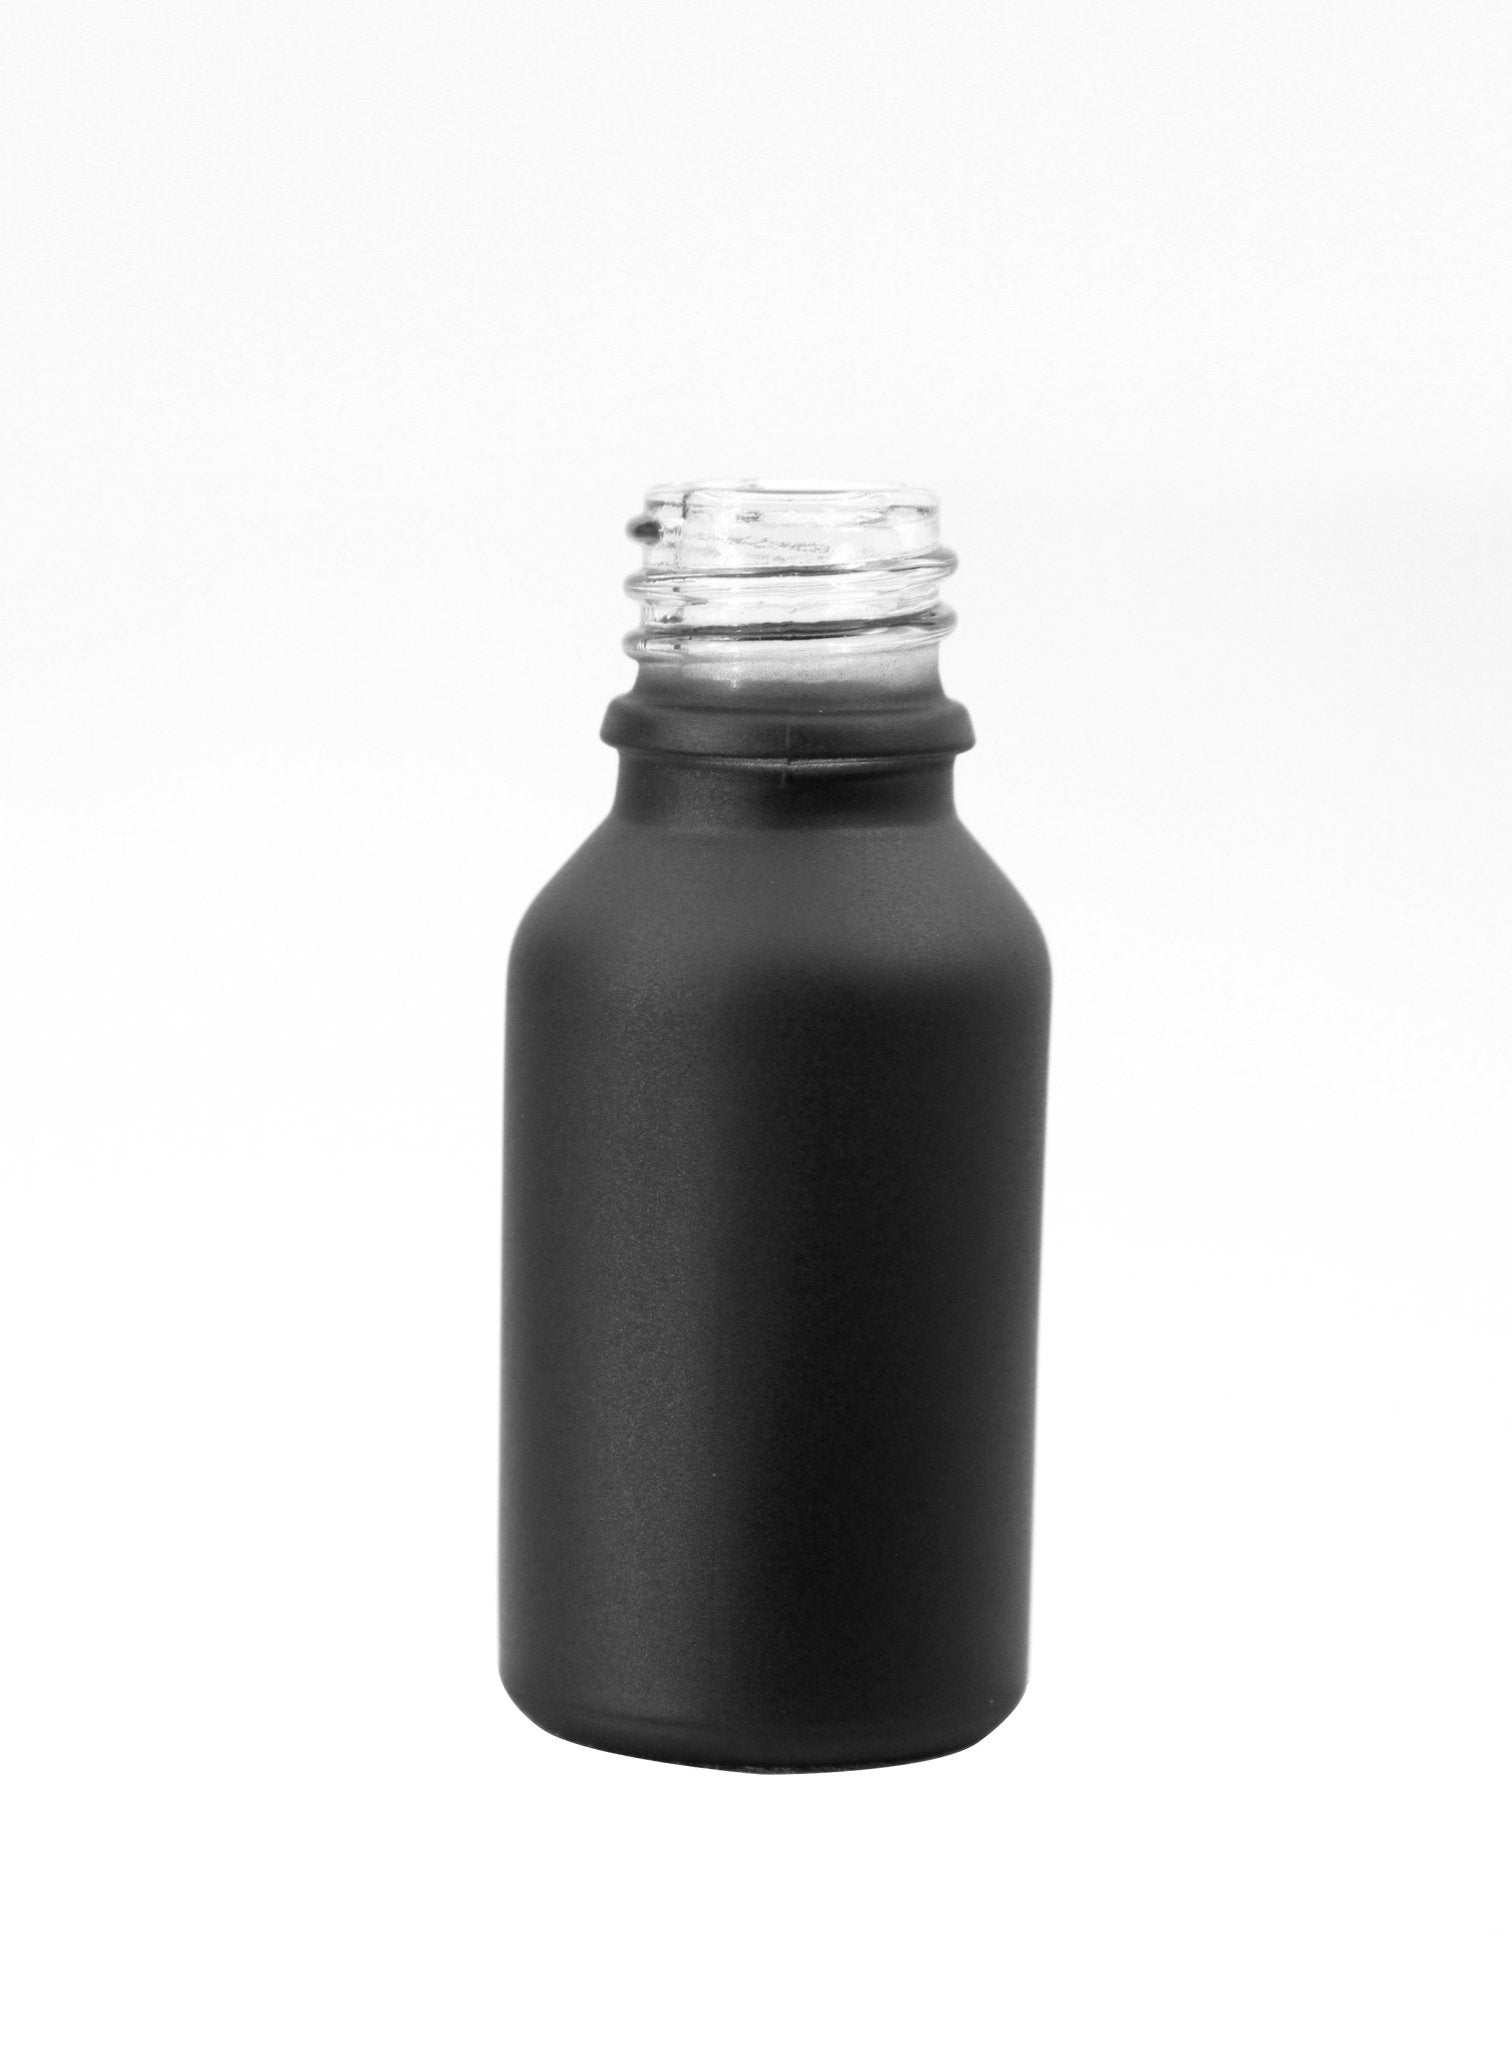 15ml Matte Black Glass Bottle 18/415 neck - Rock Bottom Bottles / Packaging Company LLC